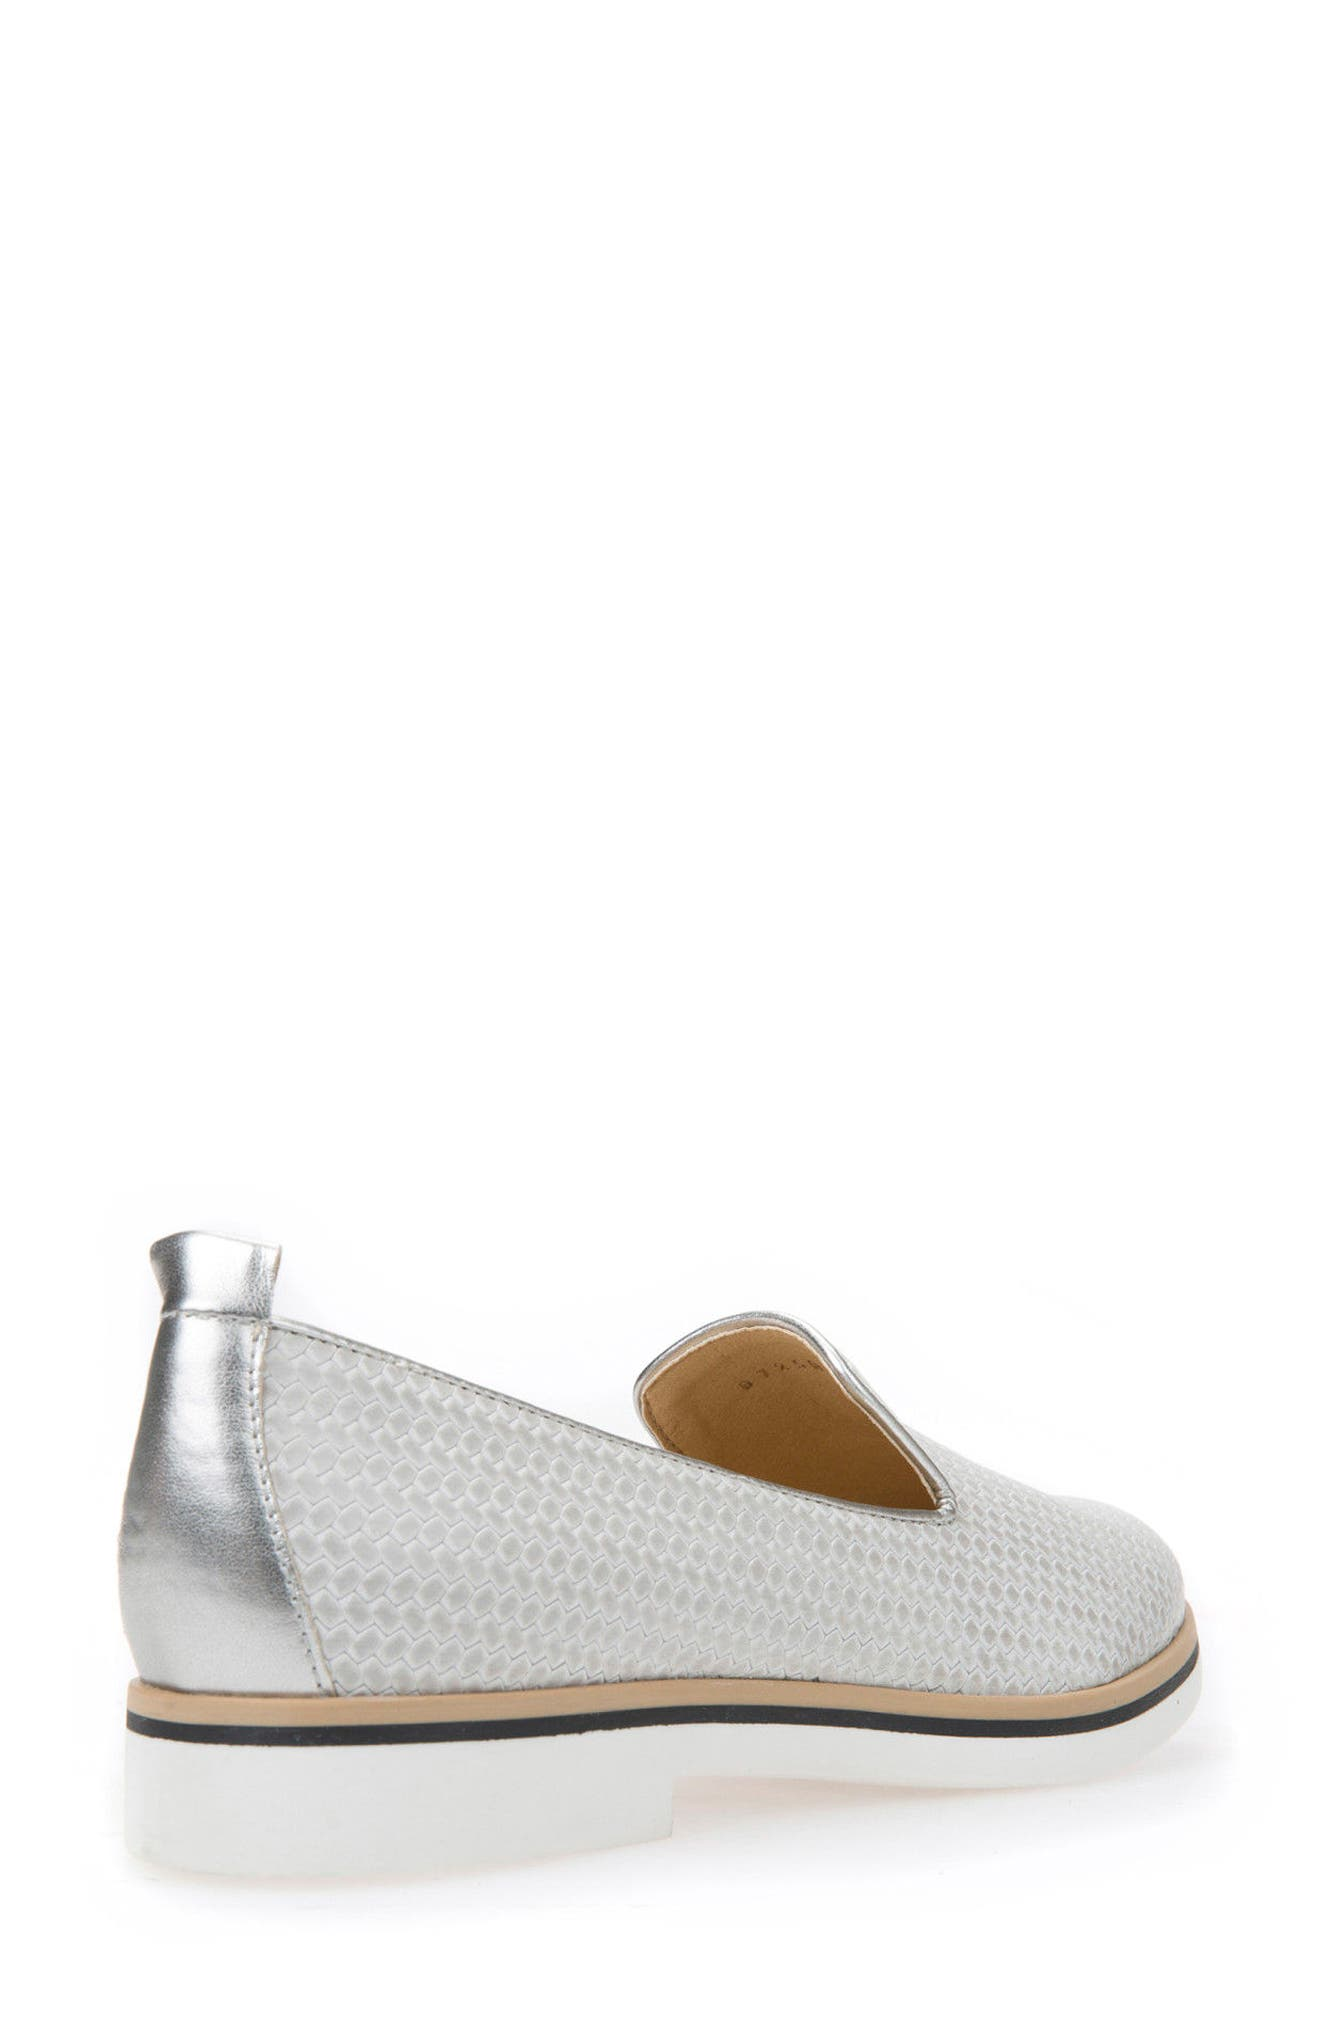 Janalee Woven Loafer,                             Alternate thumbnail 2, color,                             LIGHT GREY LEATHER